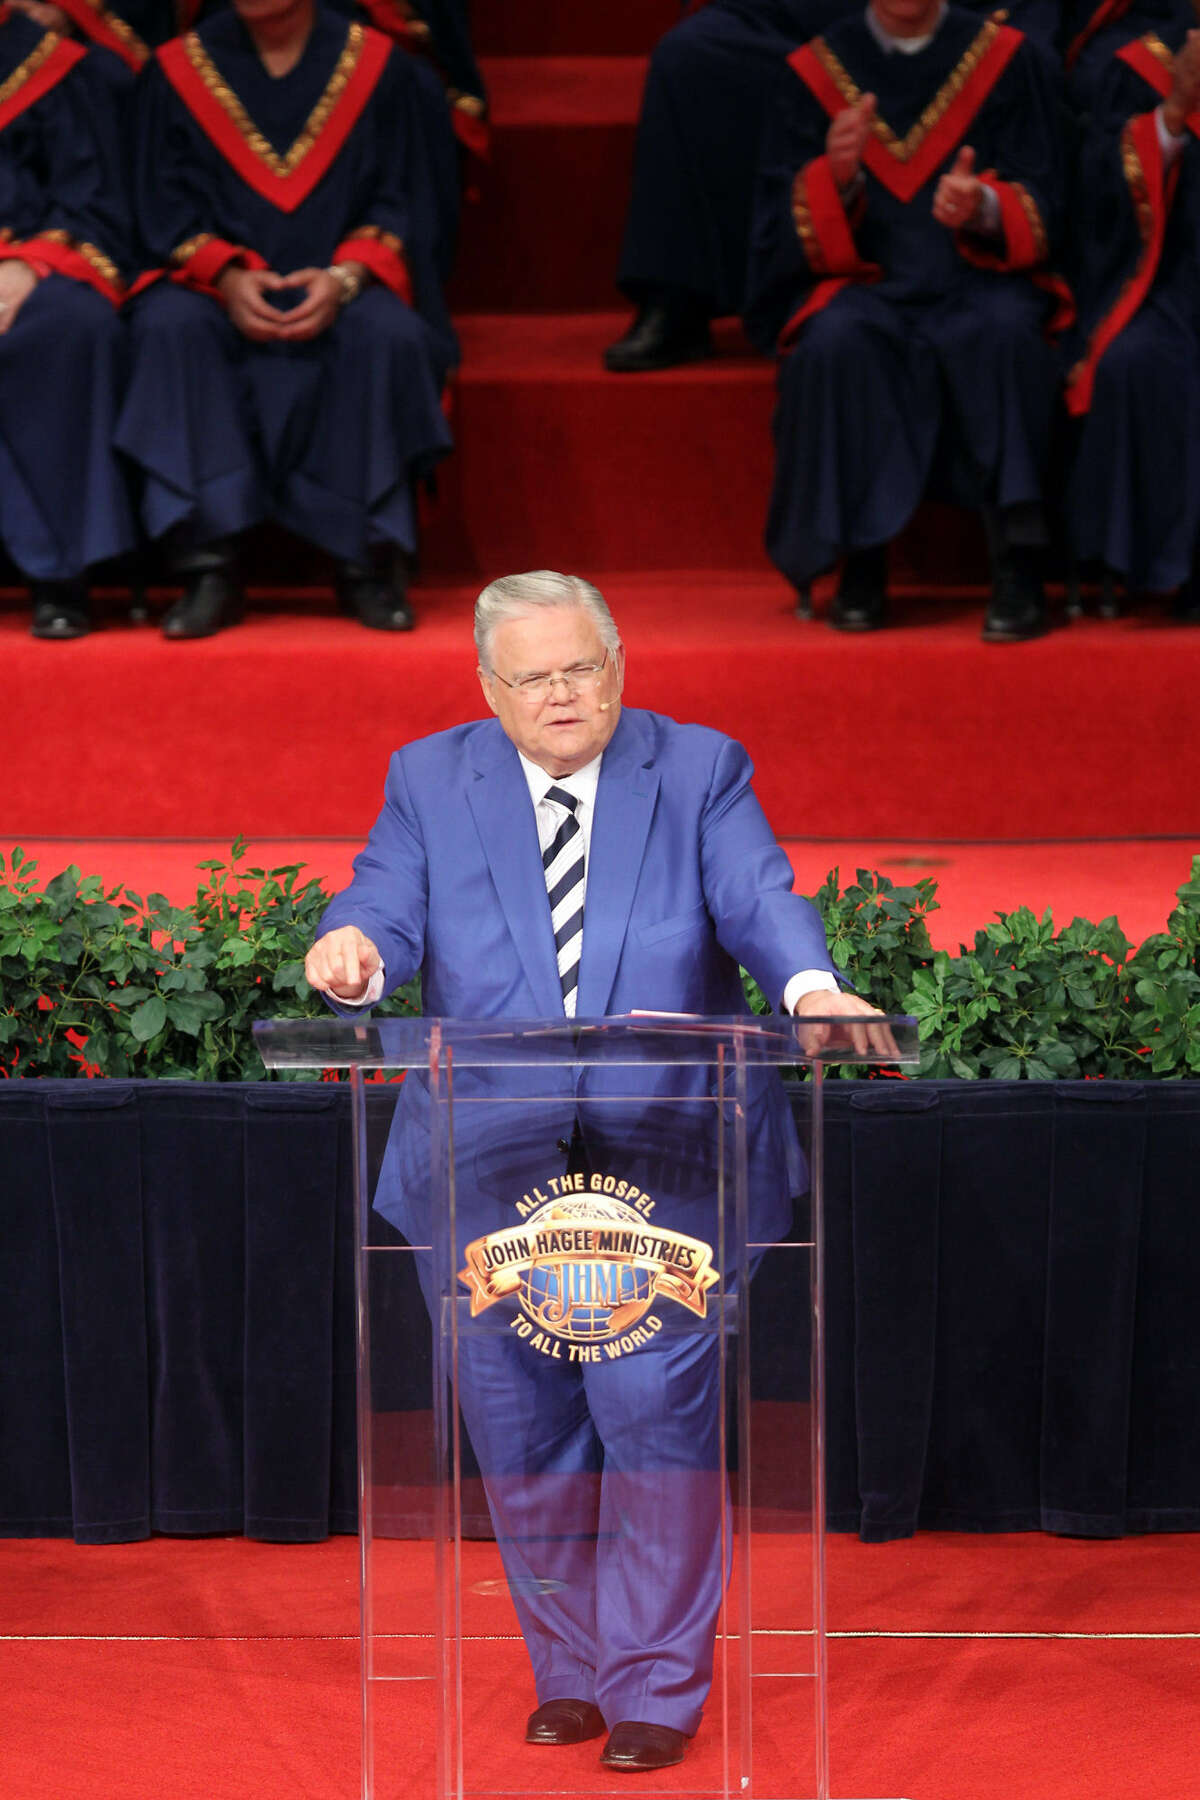 Pastor John Hagee had spoken against the proposed ordinance from the pulpit Aug. 4 and again on the Glenn Beck talk show Aug. 5.